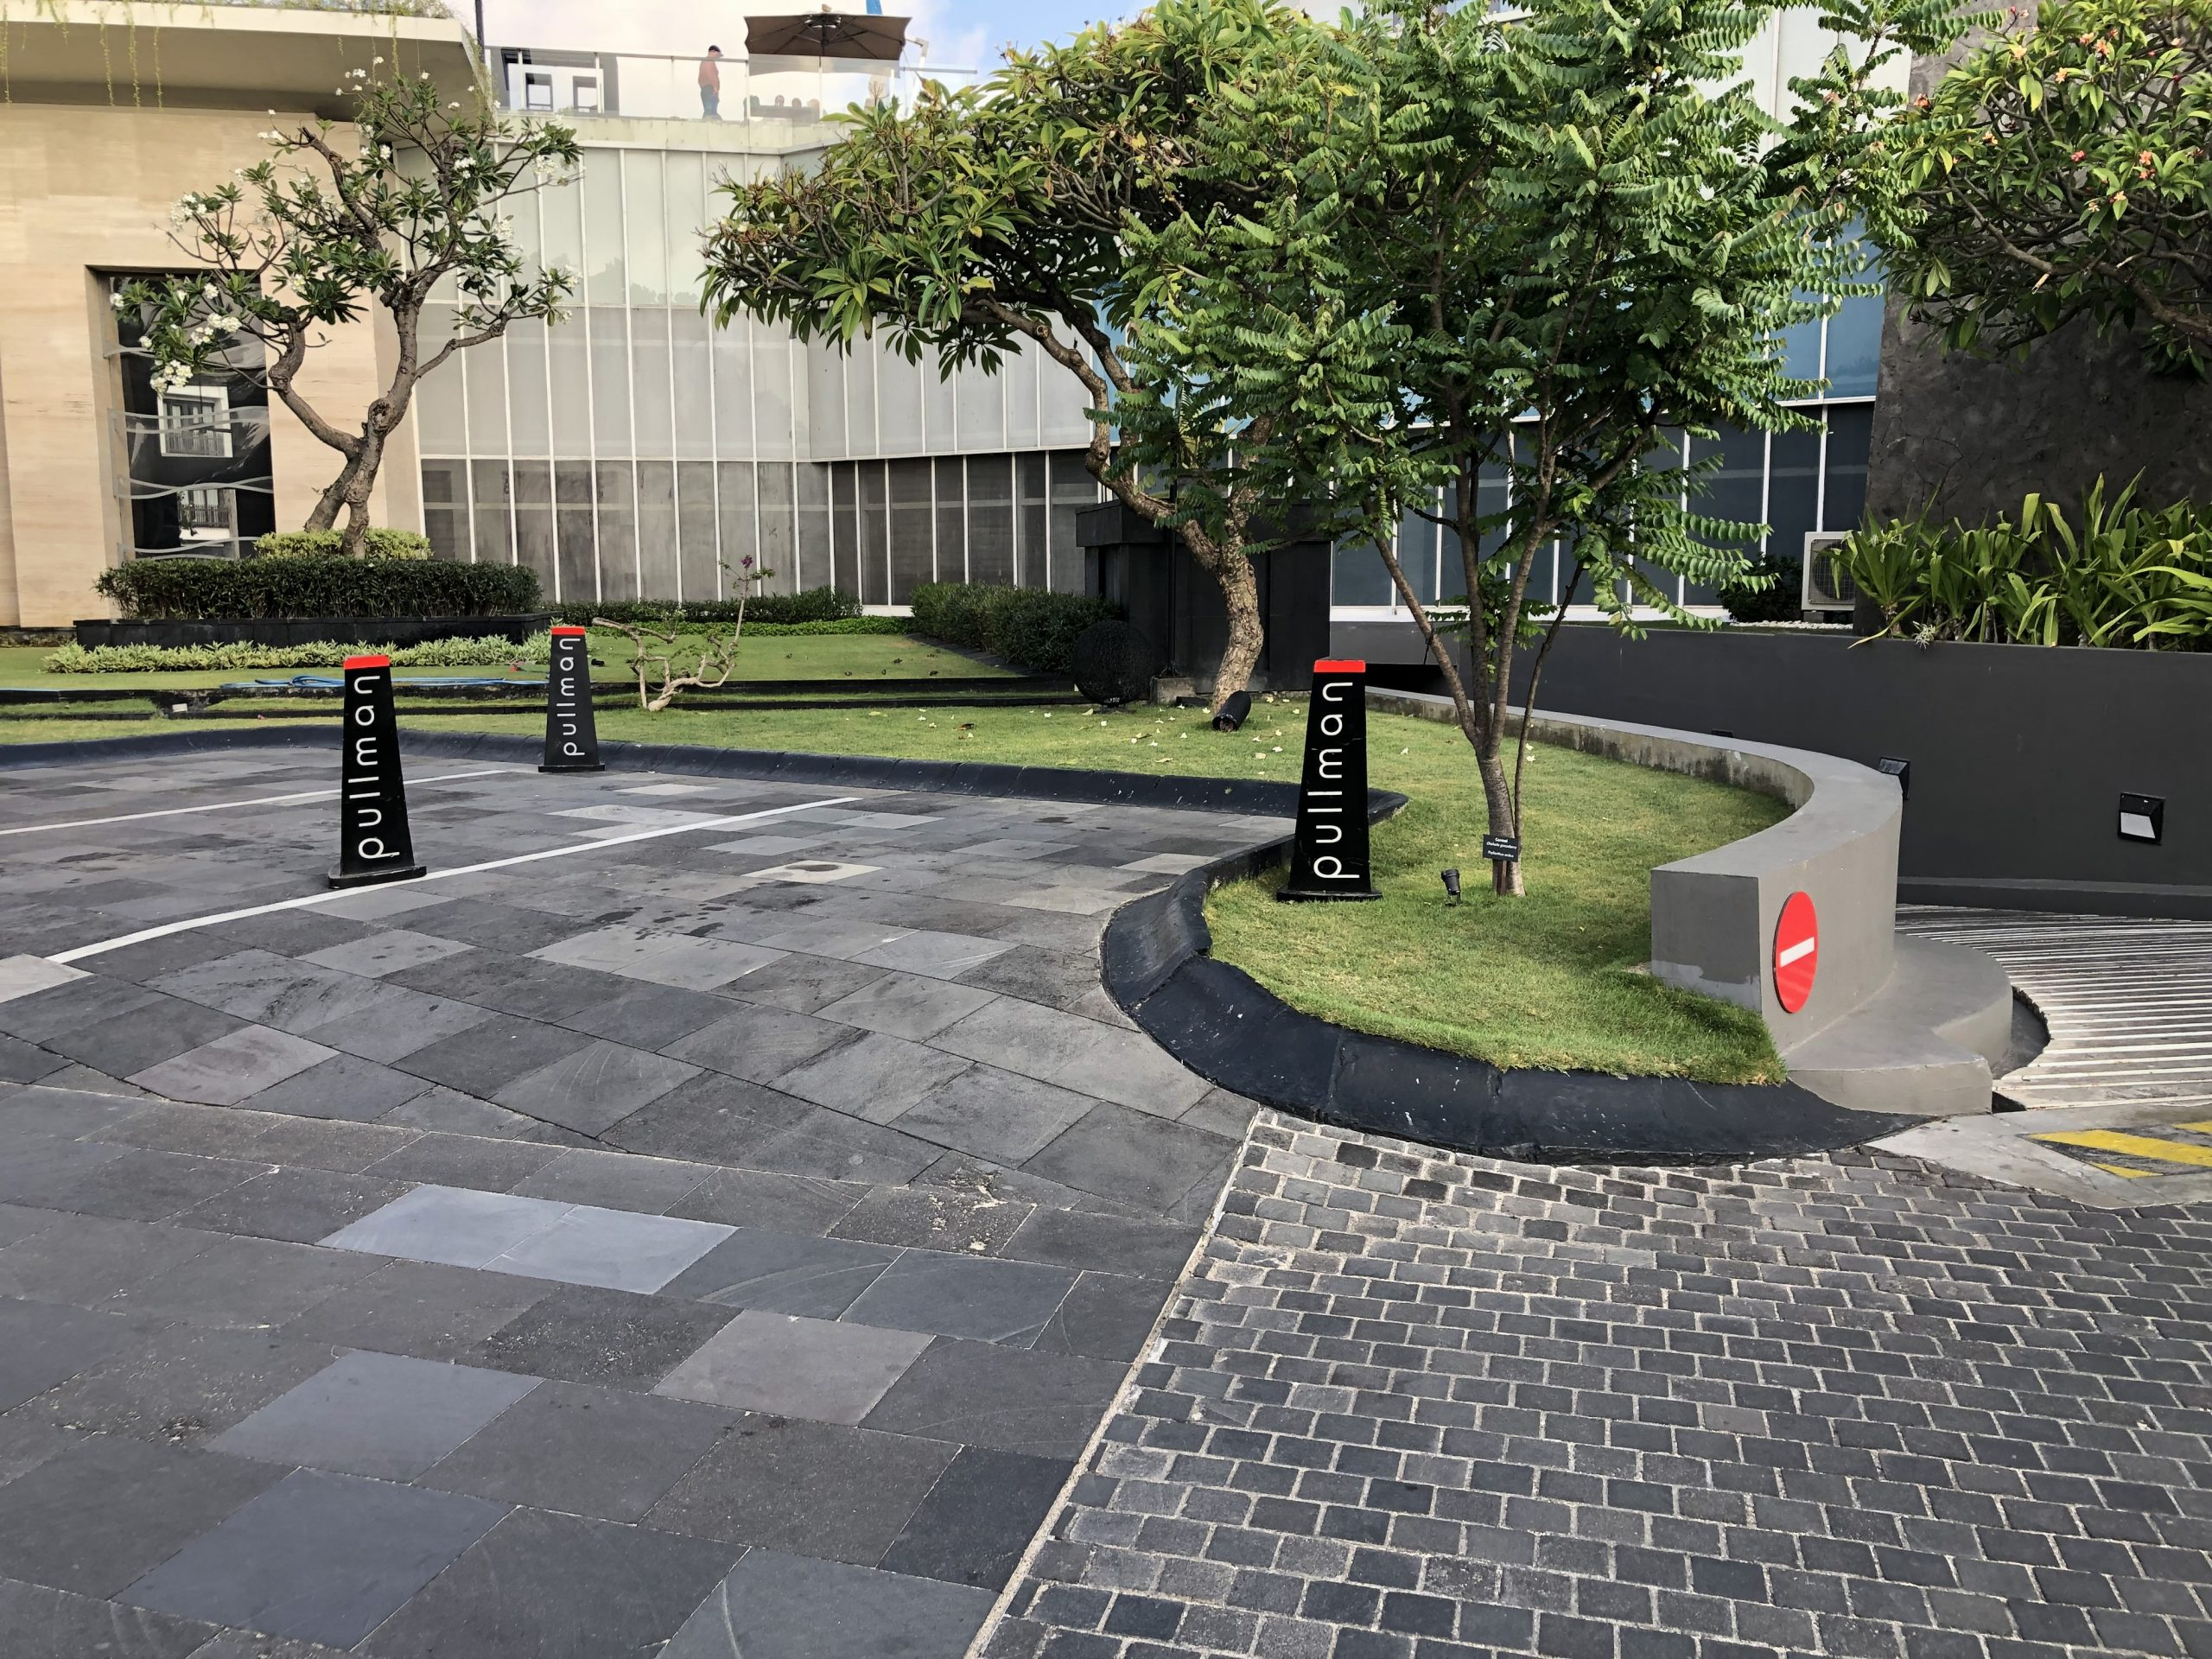 Bali Black Lava Stone Tiles – Buy The Elegance Bali Black Lava Stone Tiles for Minimalist-House Style